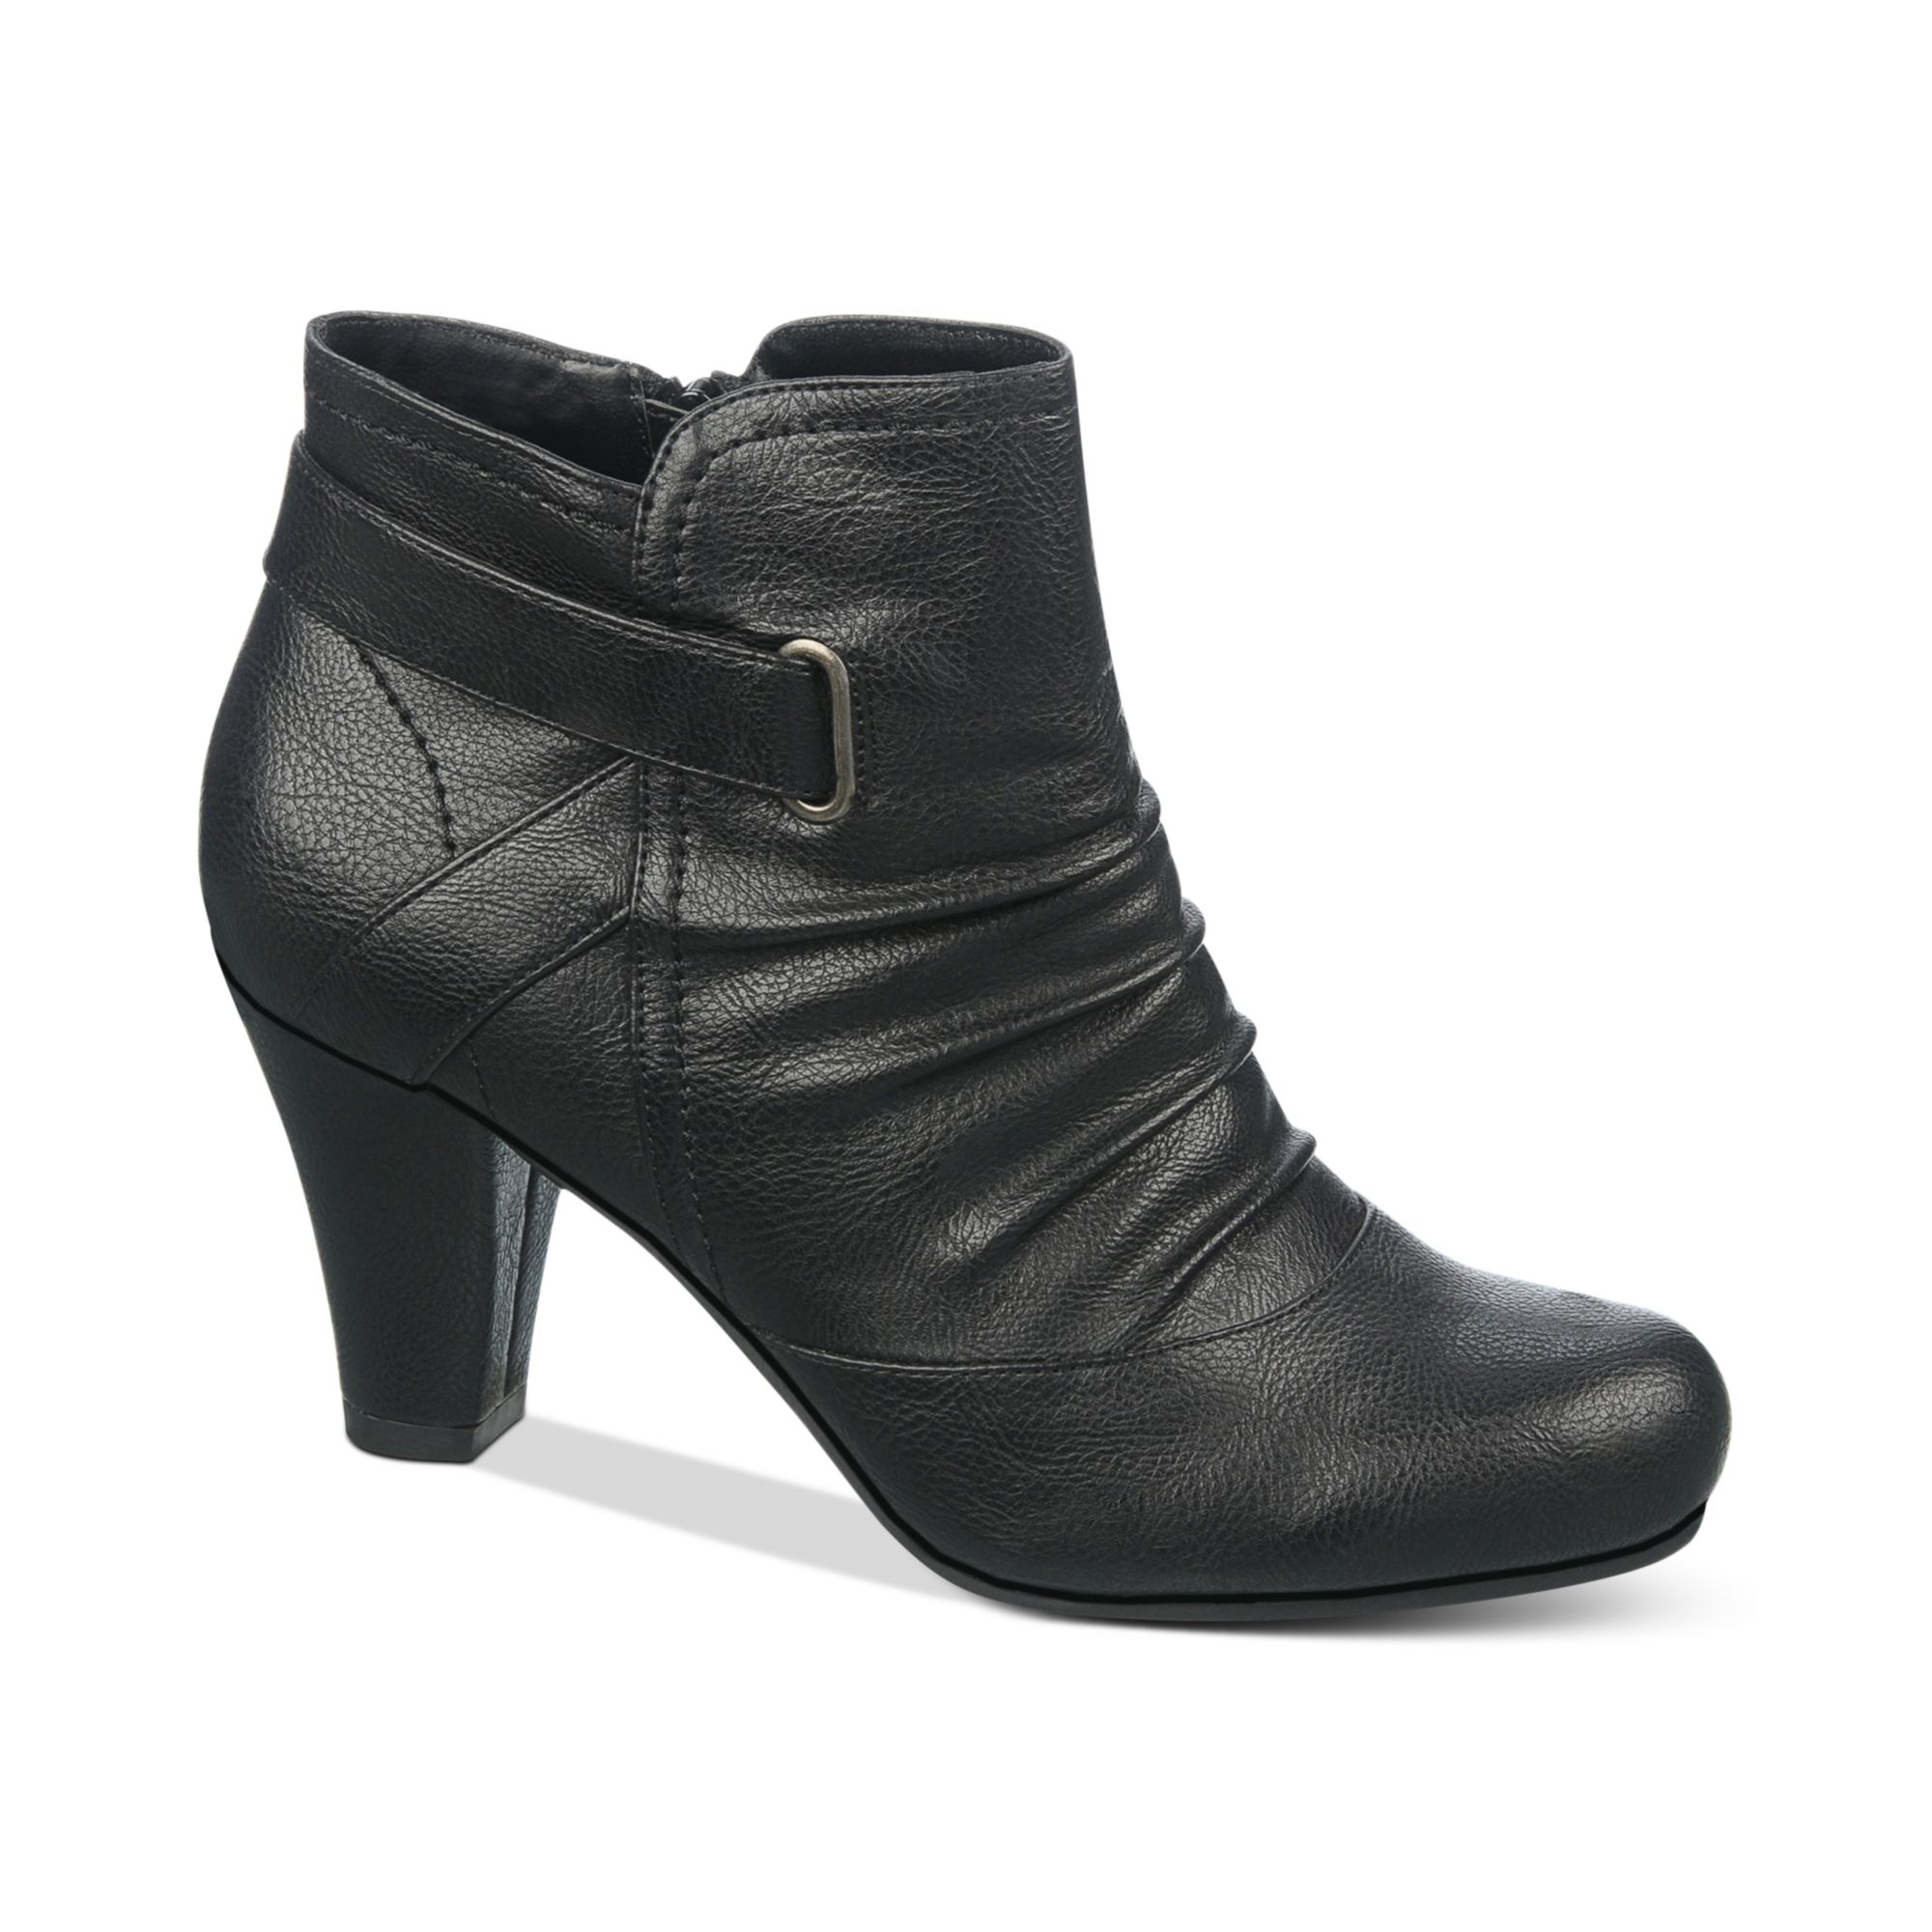 Even your standard go-to shoes have a lot to say when they've got their own attitude. Nothing's cooler (or more classic) than black leather ankle boots with jeans and a moto jacket. Maybe you prefer a contrast zip, a trending heel shape or tasteful lace-up combat boots.